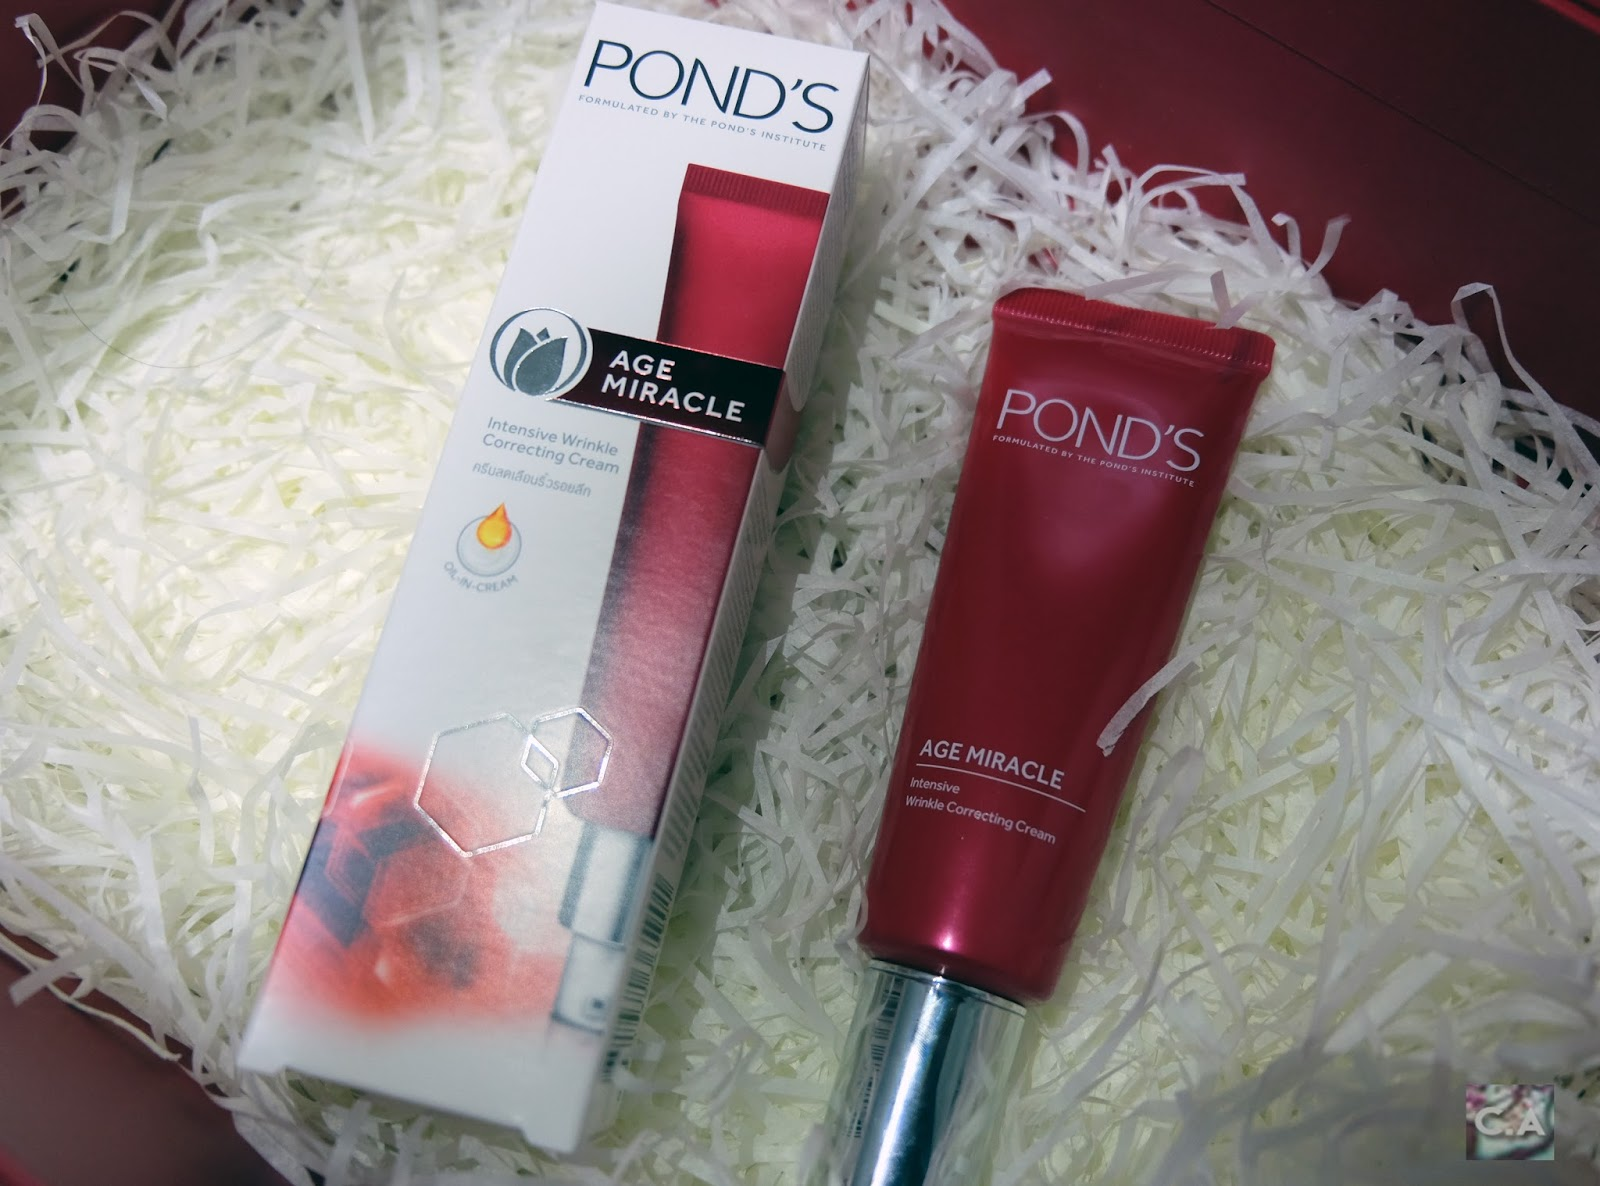 Pond's Age Miracle Intensive Wrinkle Correcting Cream Curitan Aqalili